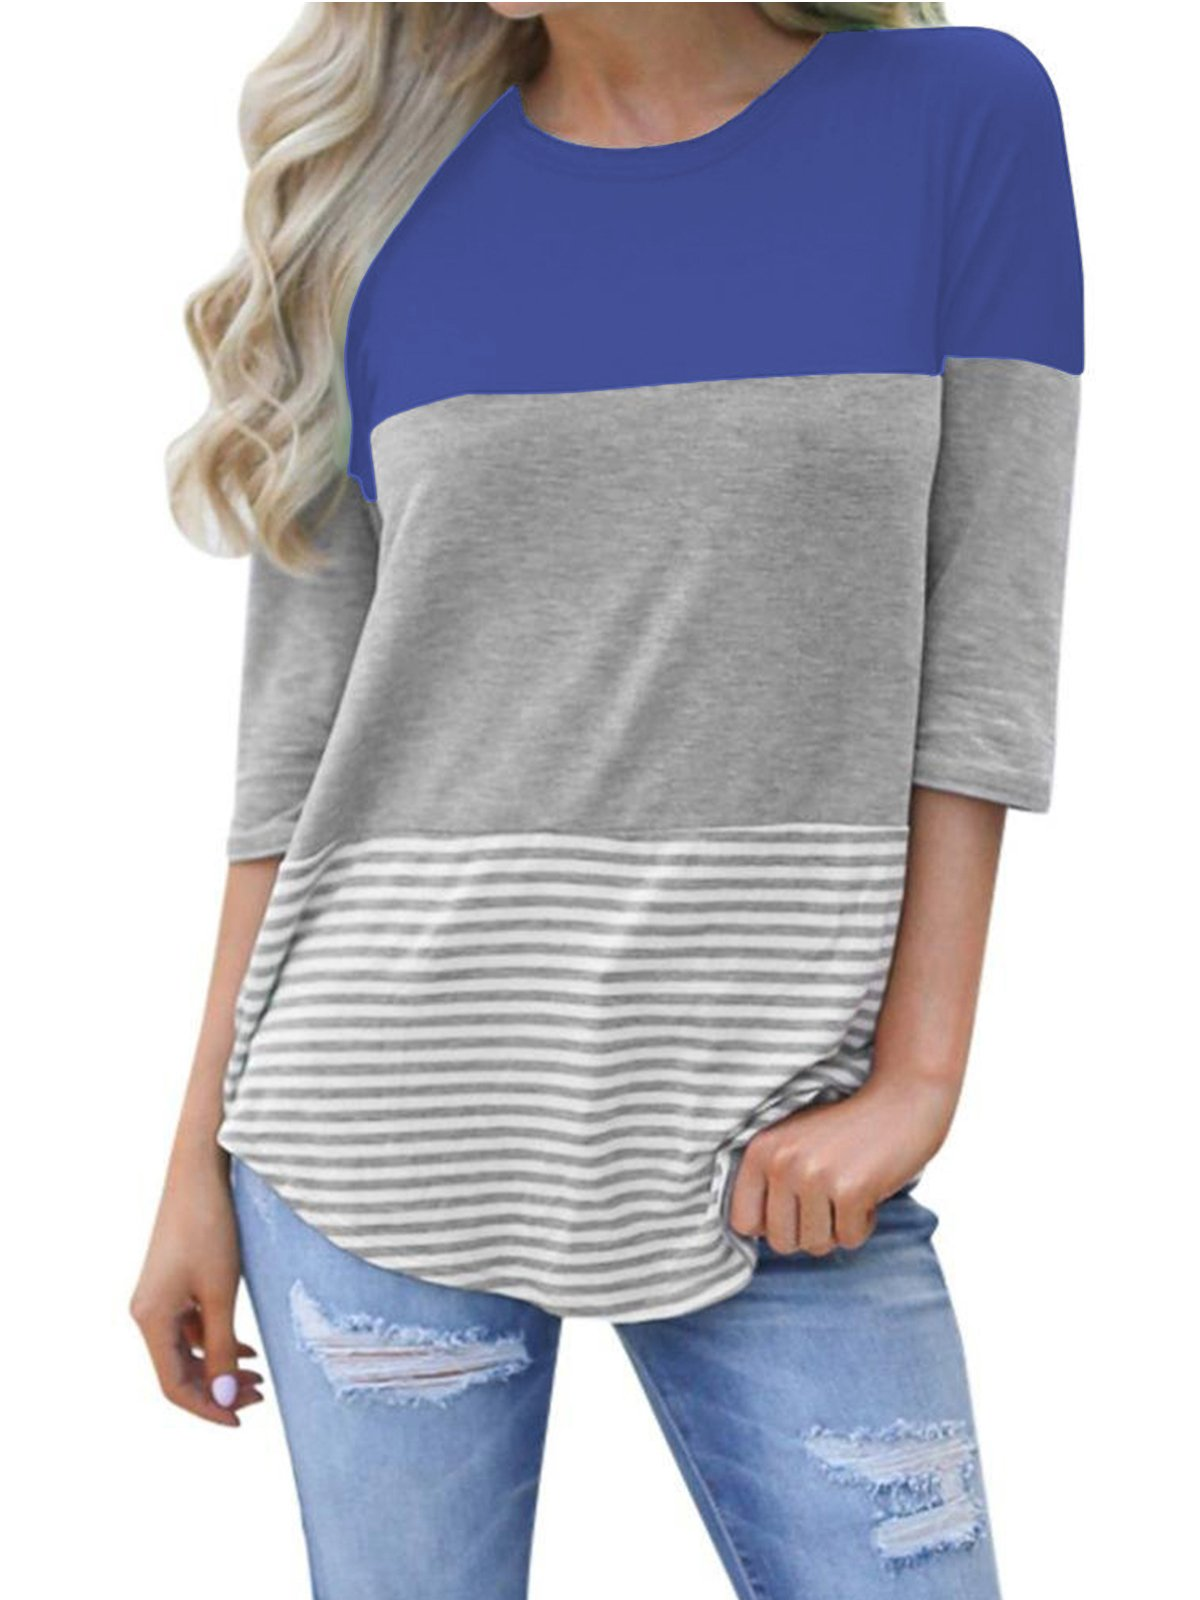 VYNCS Womens Casual 3/4 Sleeve Back Lace Top Blouses Triple Colorblock Striped Tops Tee Shirt(Navy Blue, Medium)